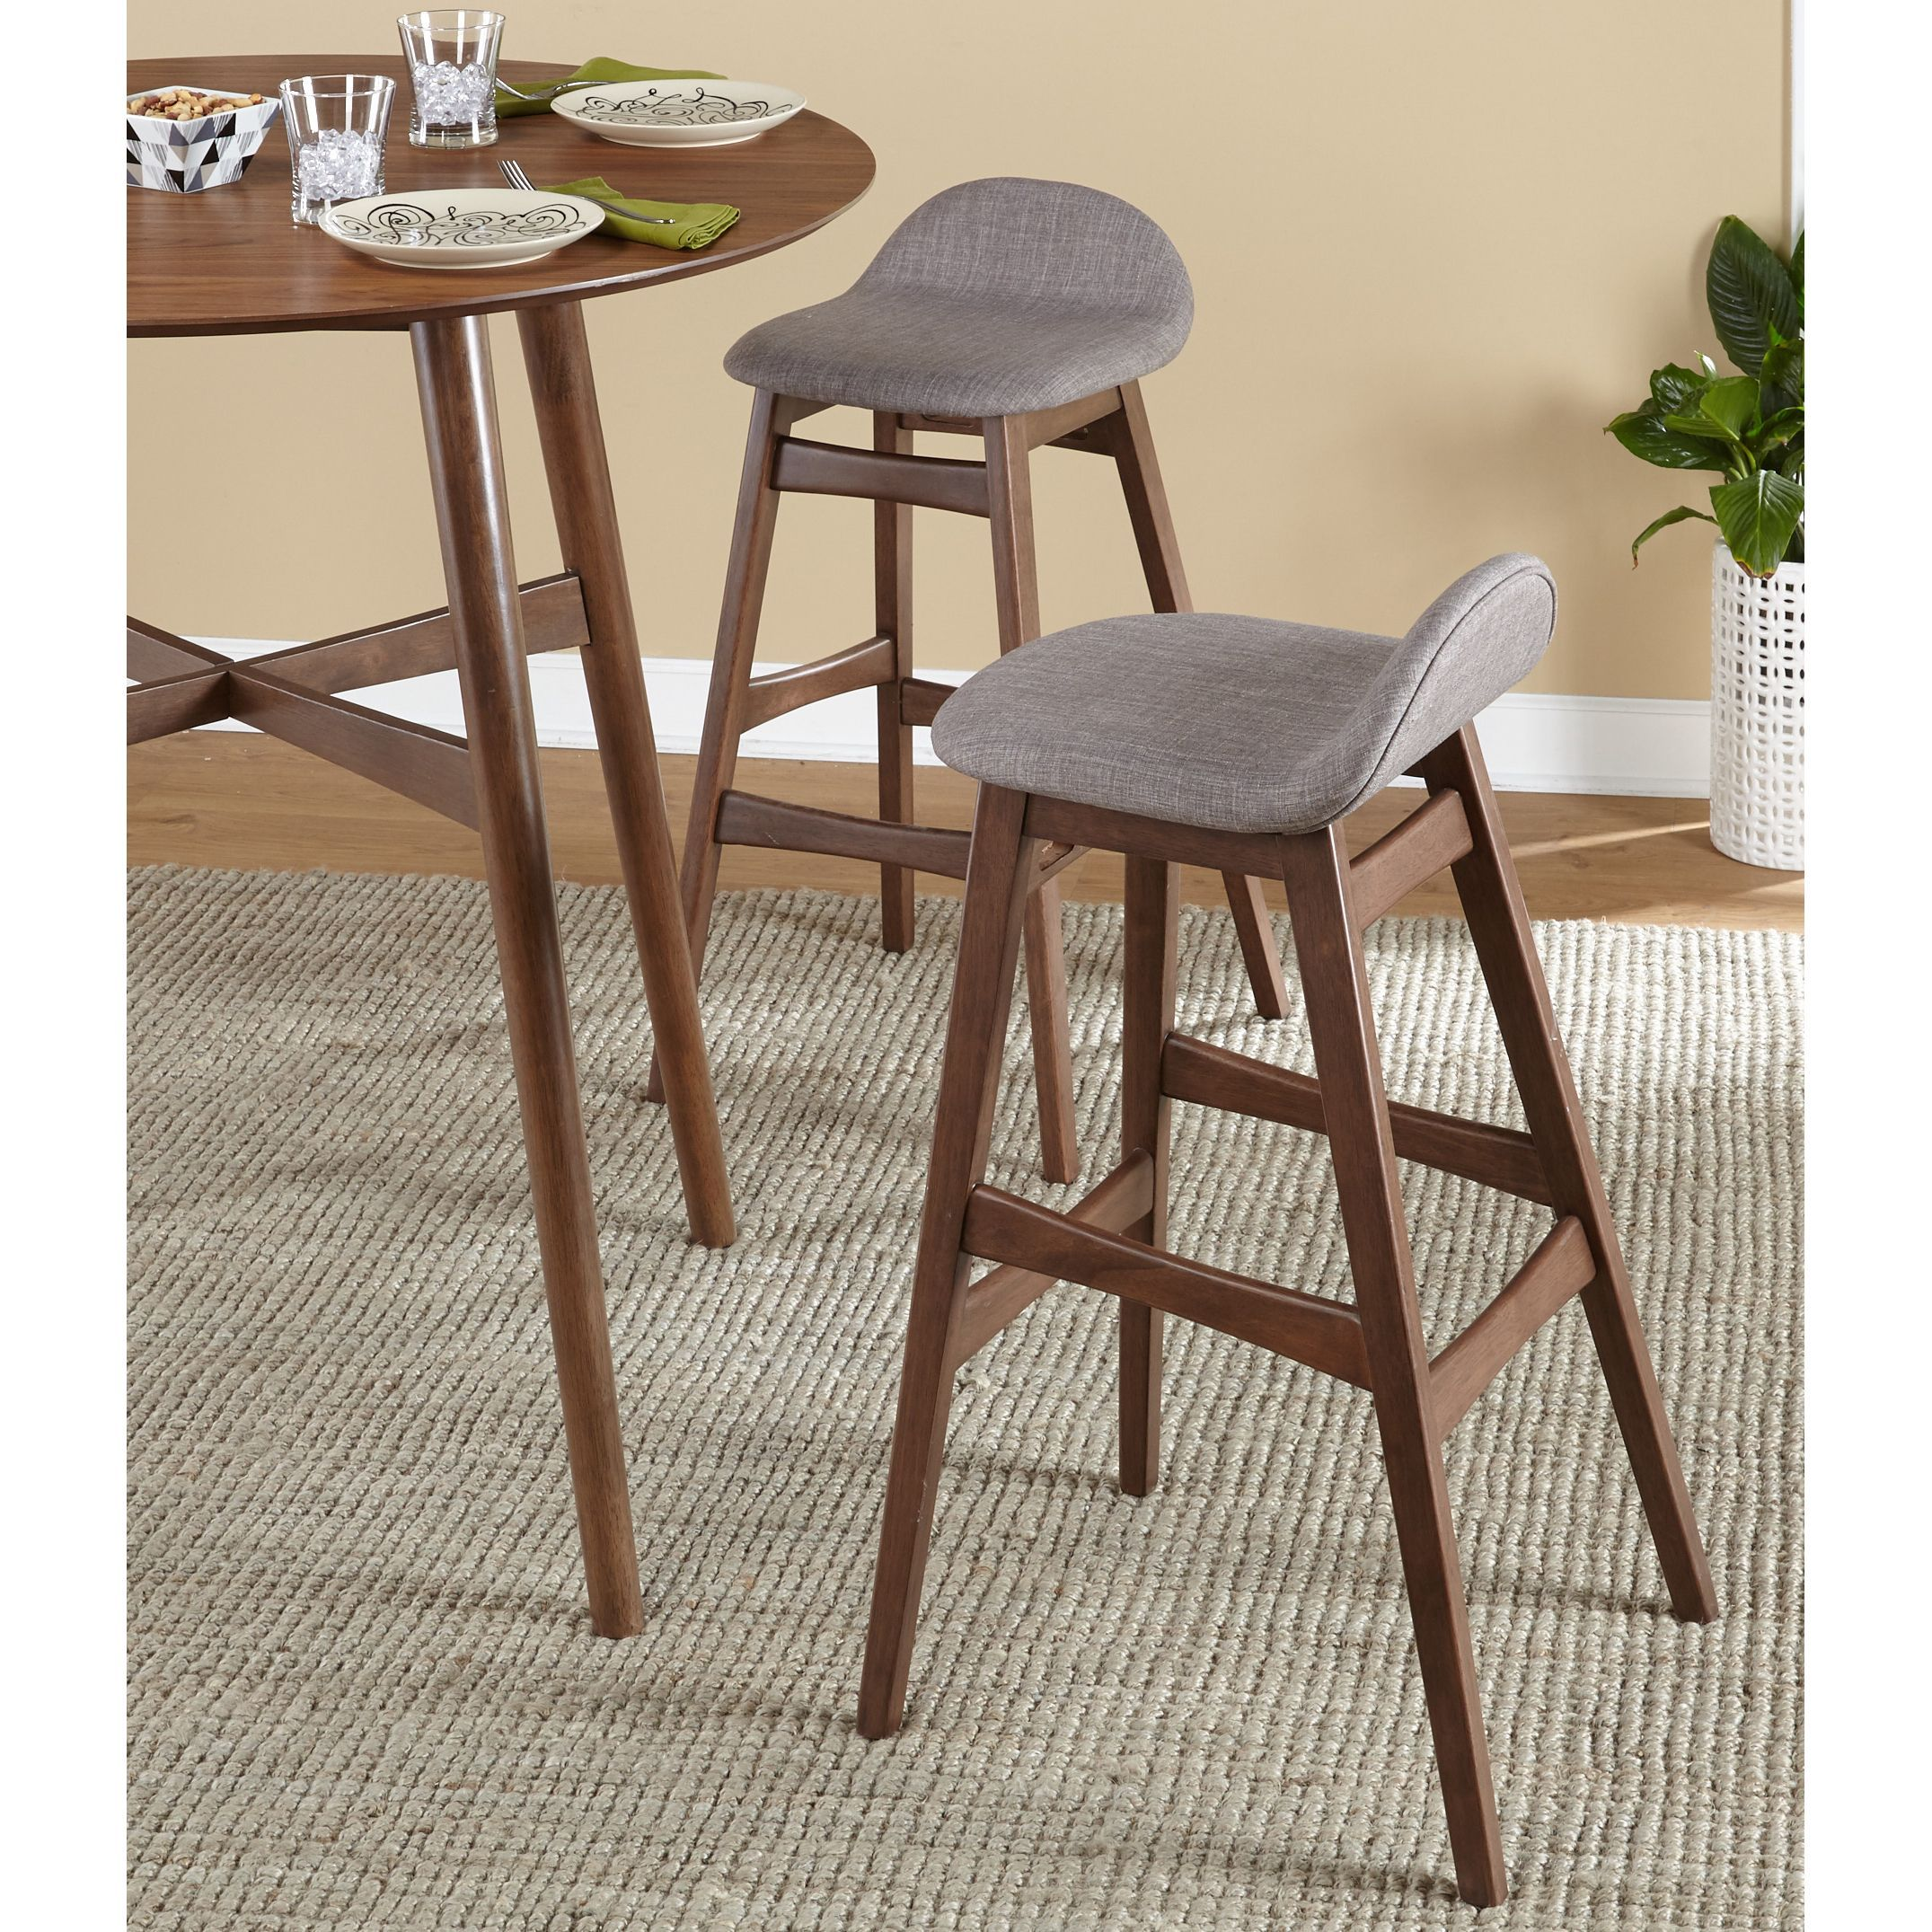 The Axel Bar Stools By Simple Living Features A Mid